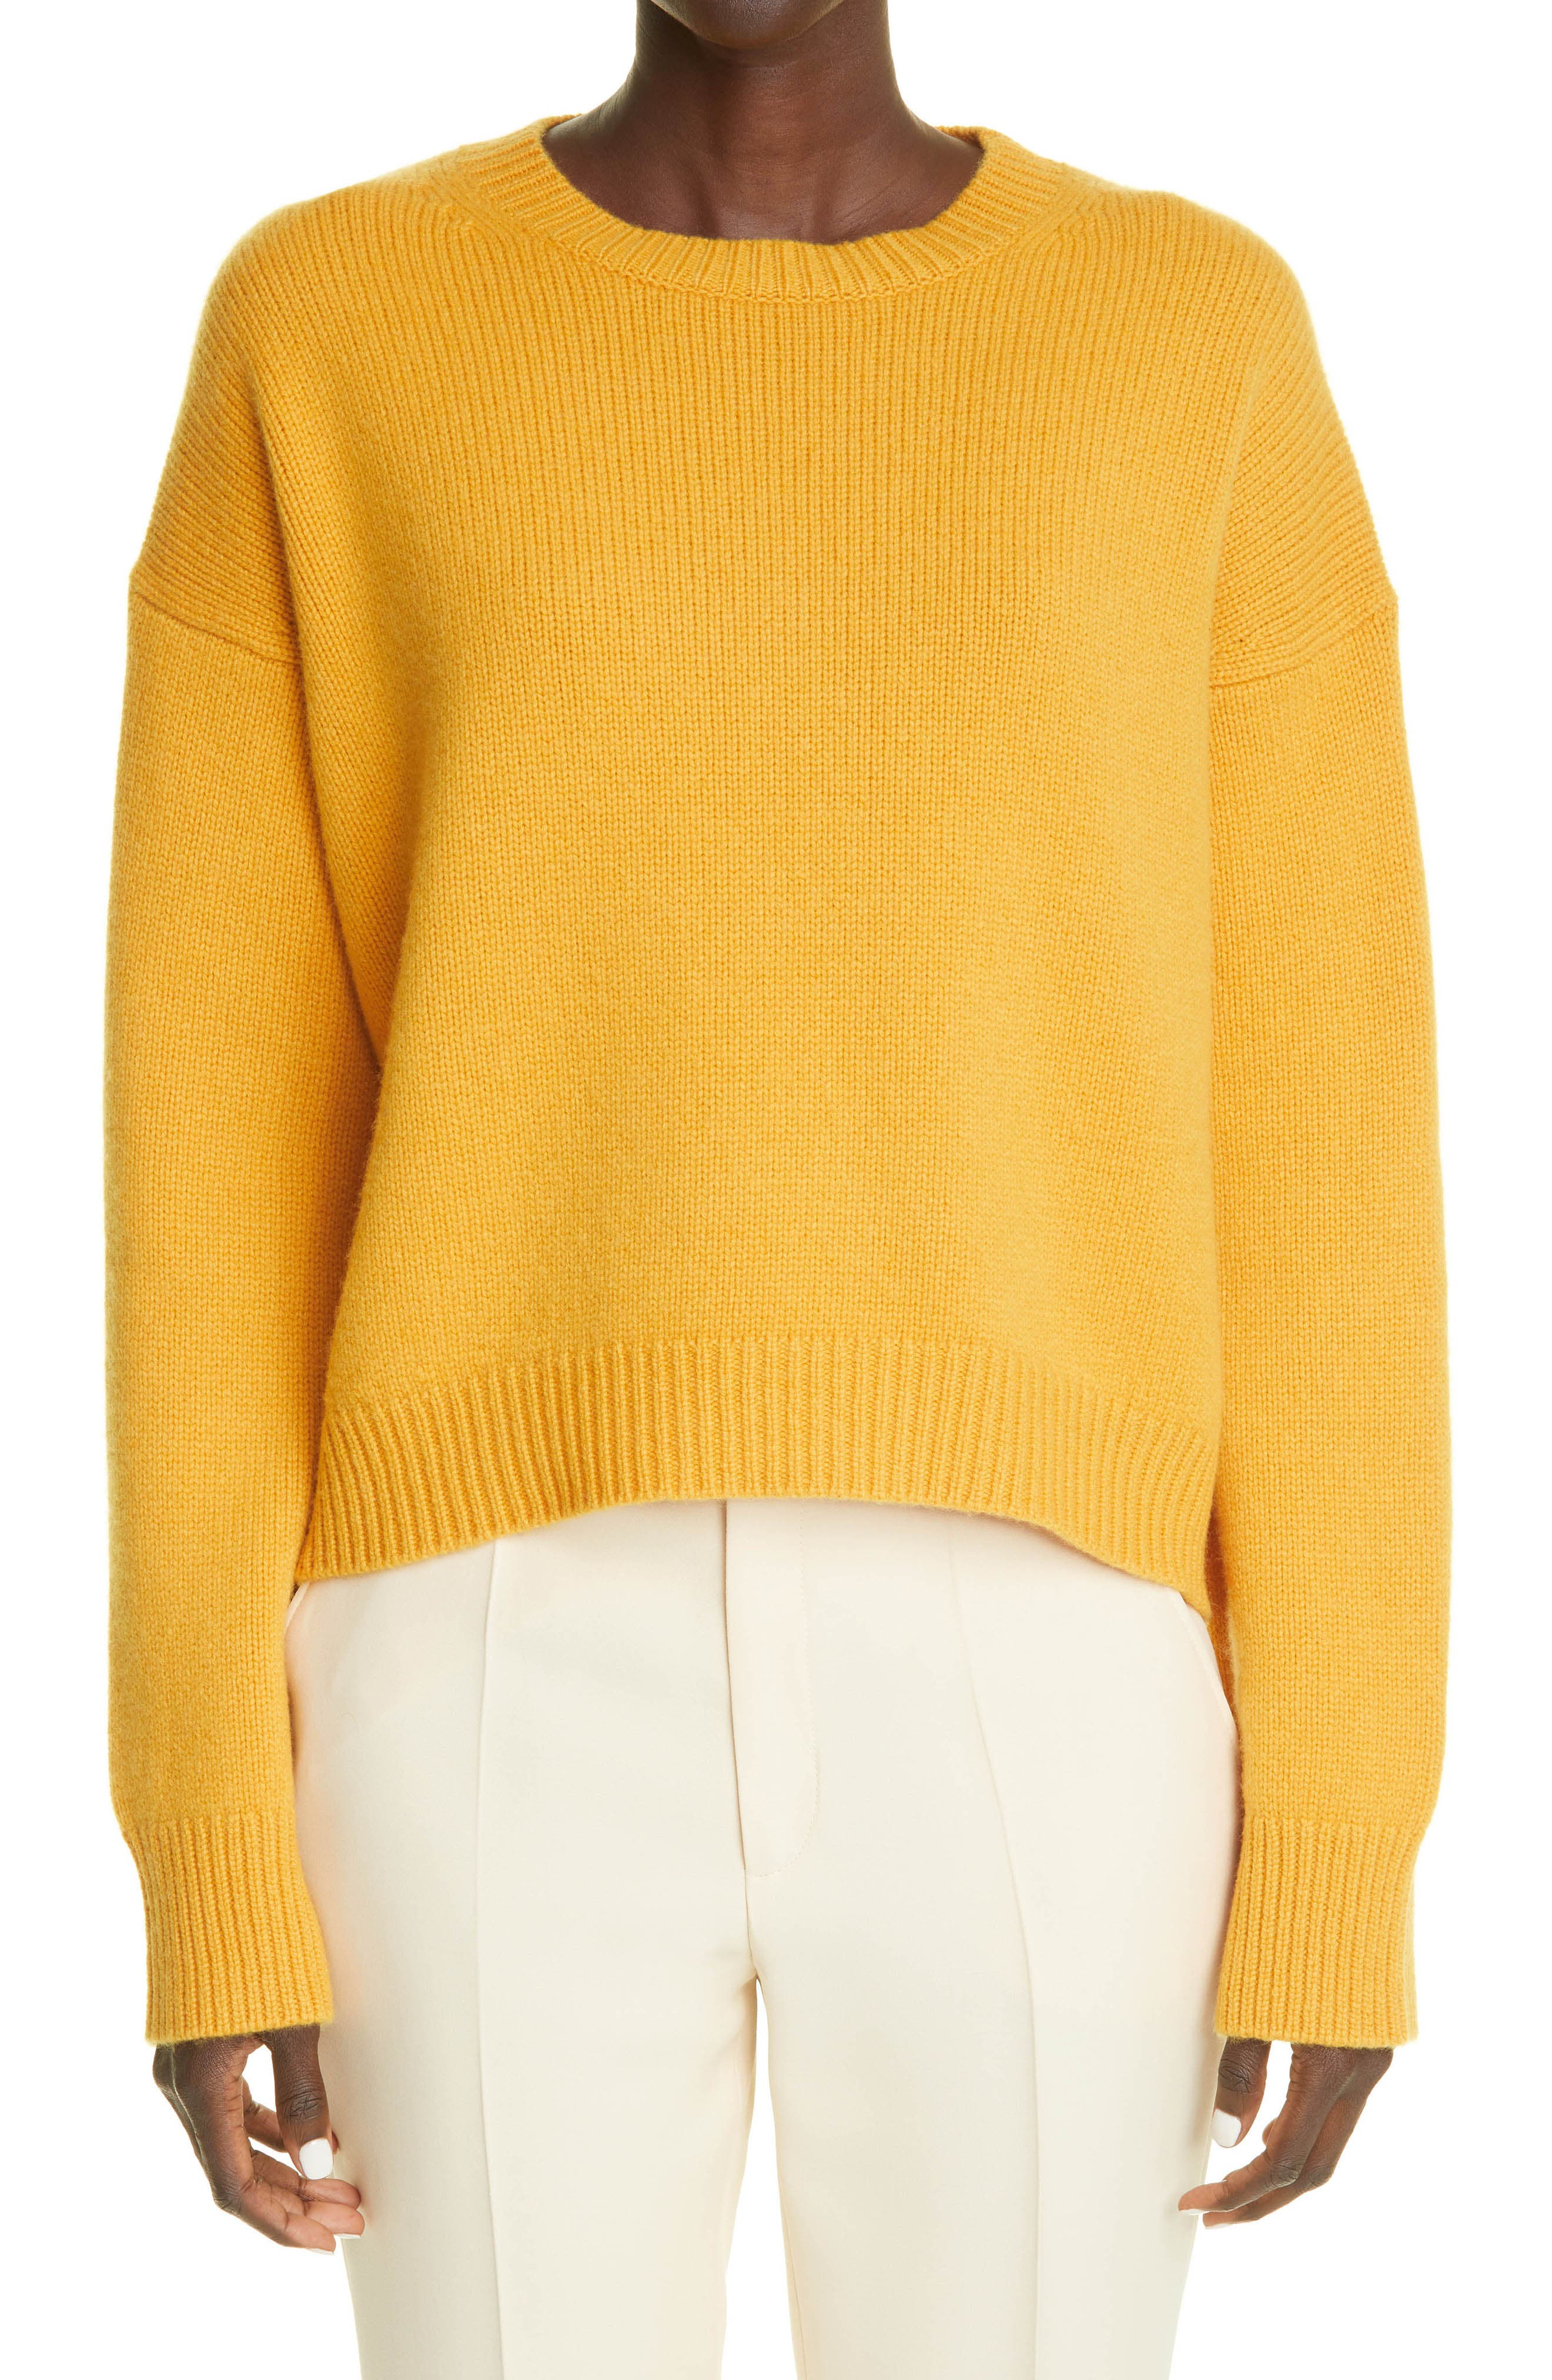 The Ivy Chunky Crop Cashmere Sweater